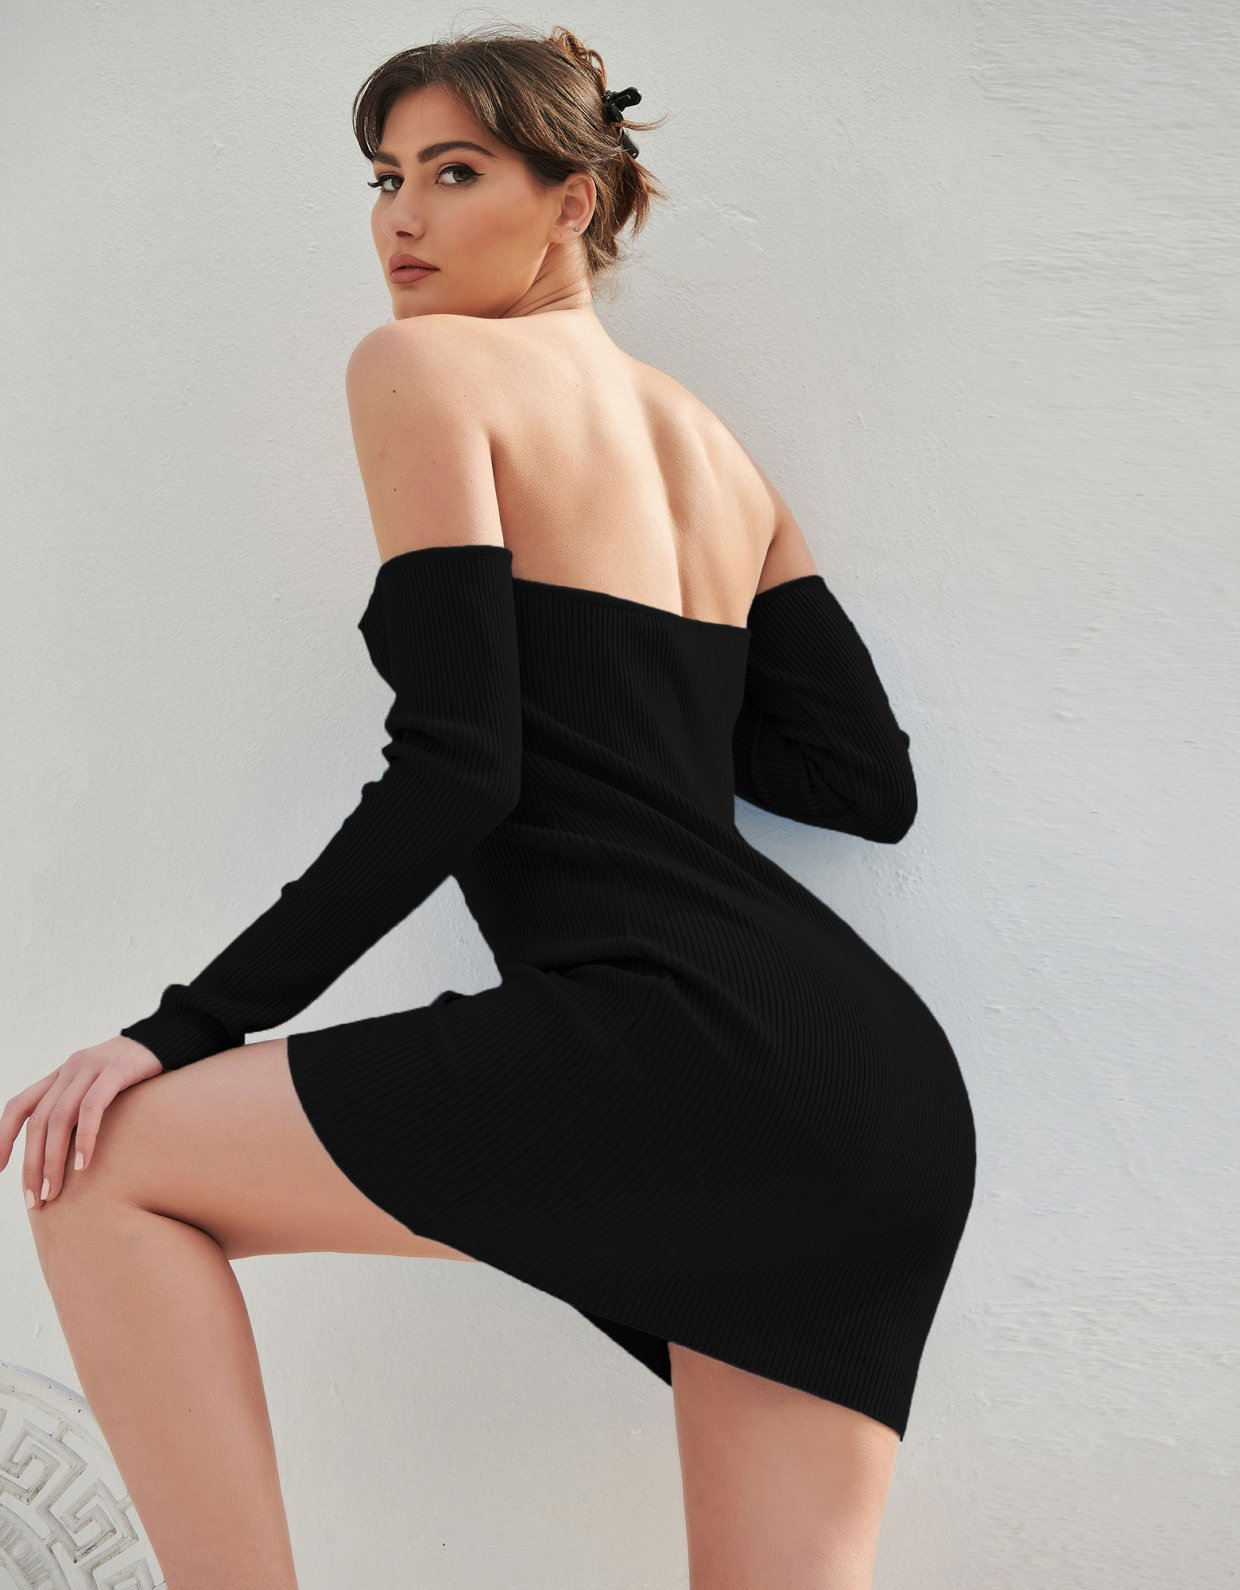 Combos Knitwear Combos S13 – Black off-shoulder dress